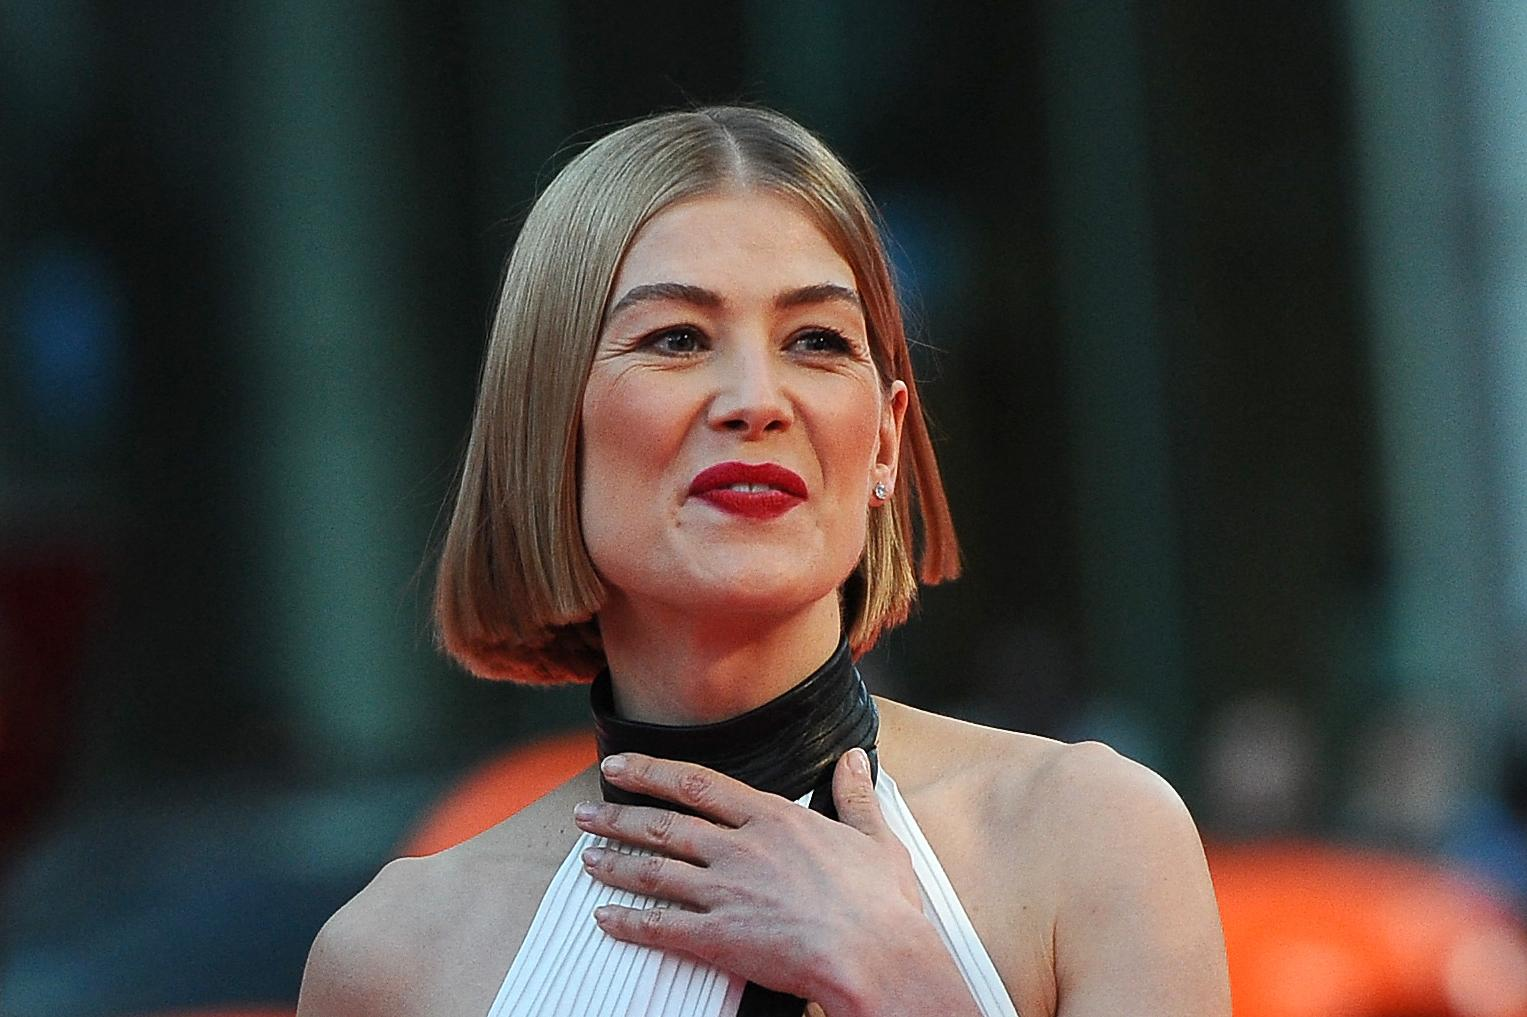 Rosamund Pike, winner of the best comedy actress. Photo: Sonia Recchia/Getty Images North America/Getty Images via AFP